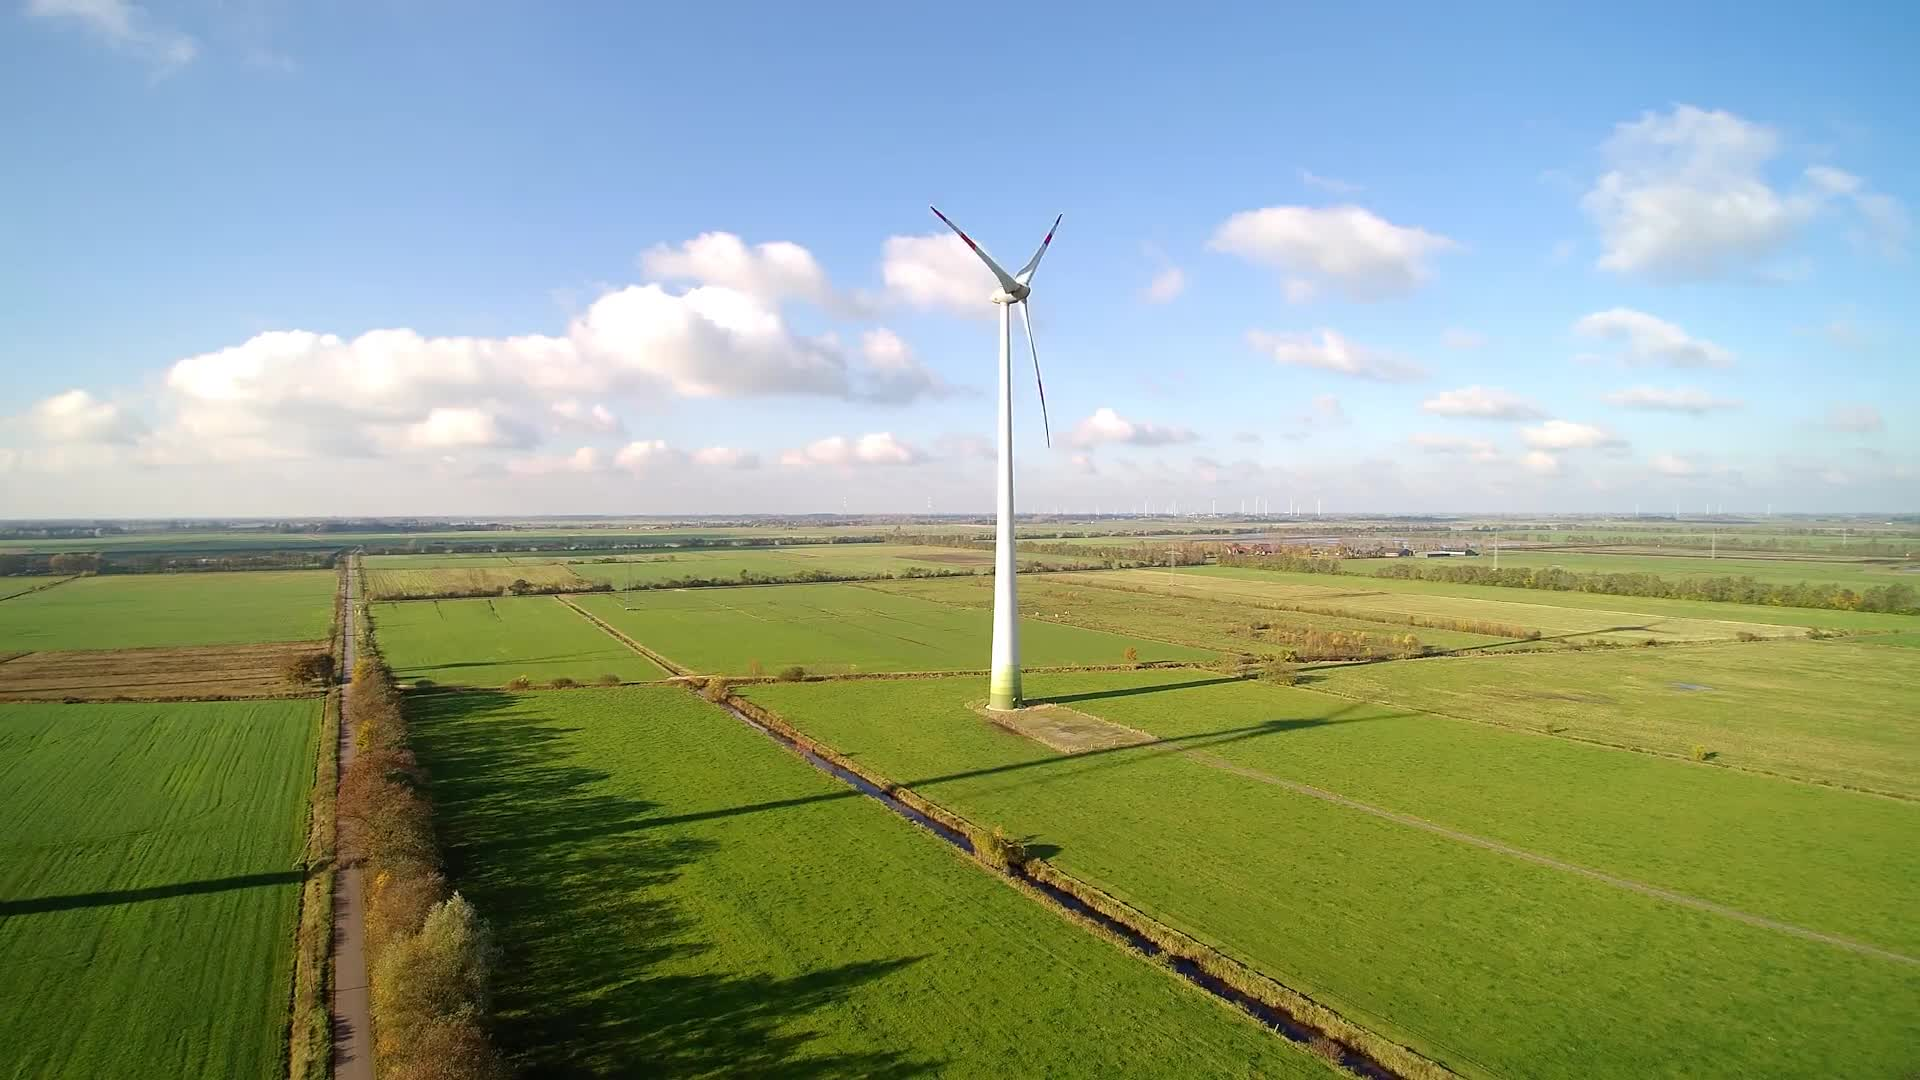 Wind turbine on field